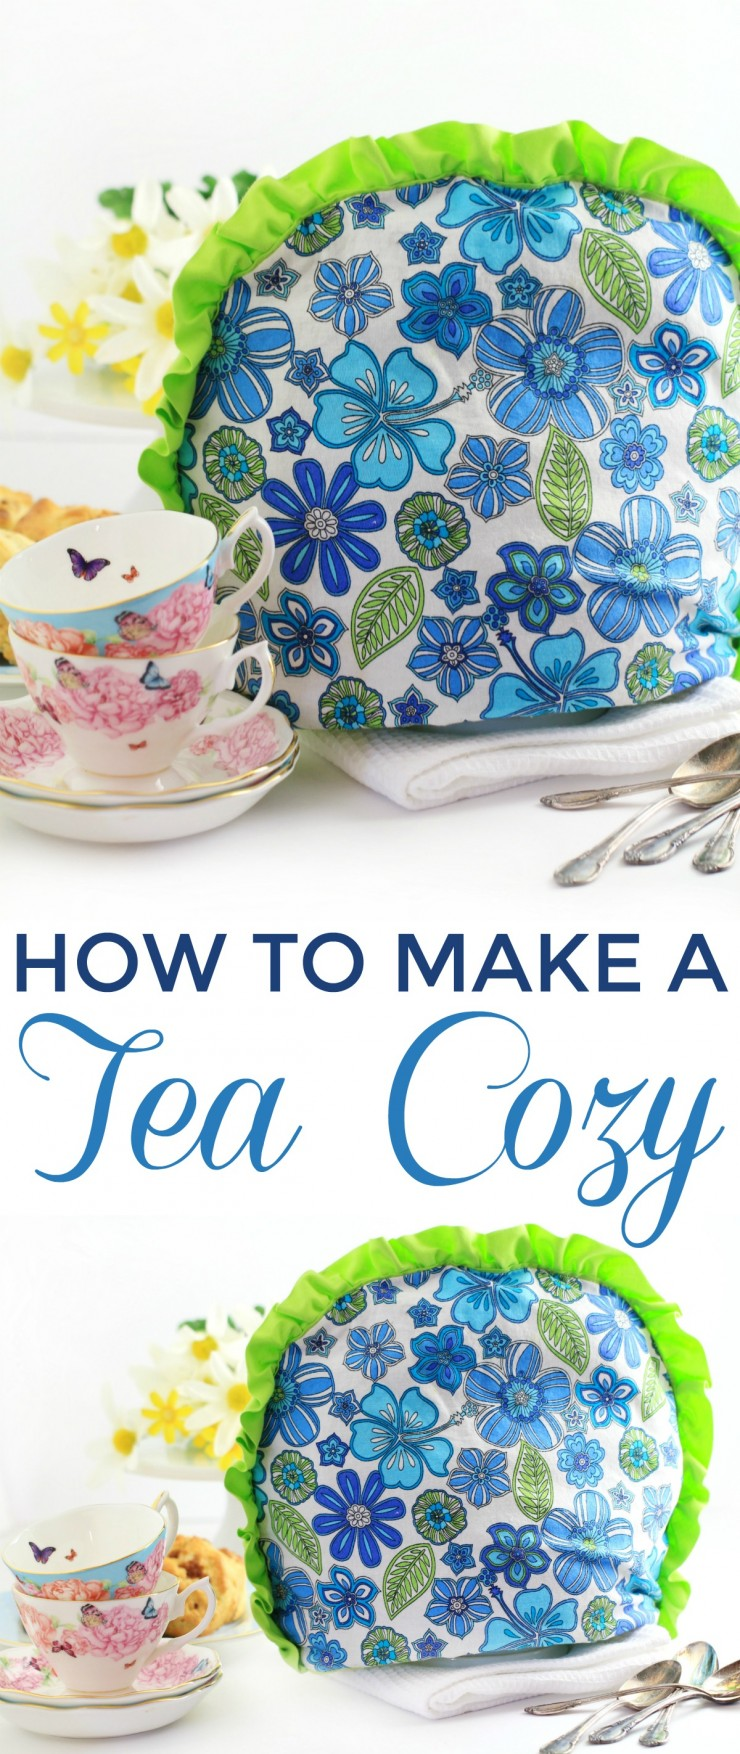 Learn how to Make a Tea Cozy with this simple diy sewing tutorial that will help you make your own Tea Cozy pattern to fit your tea pot!